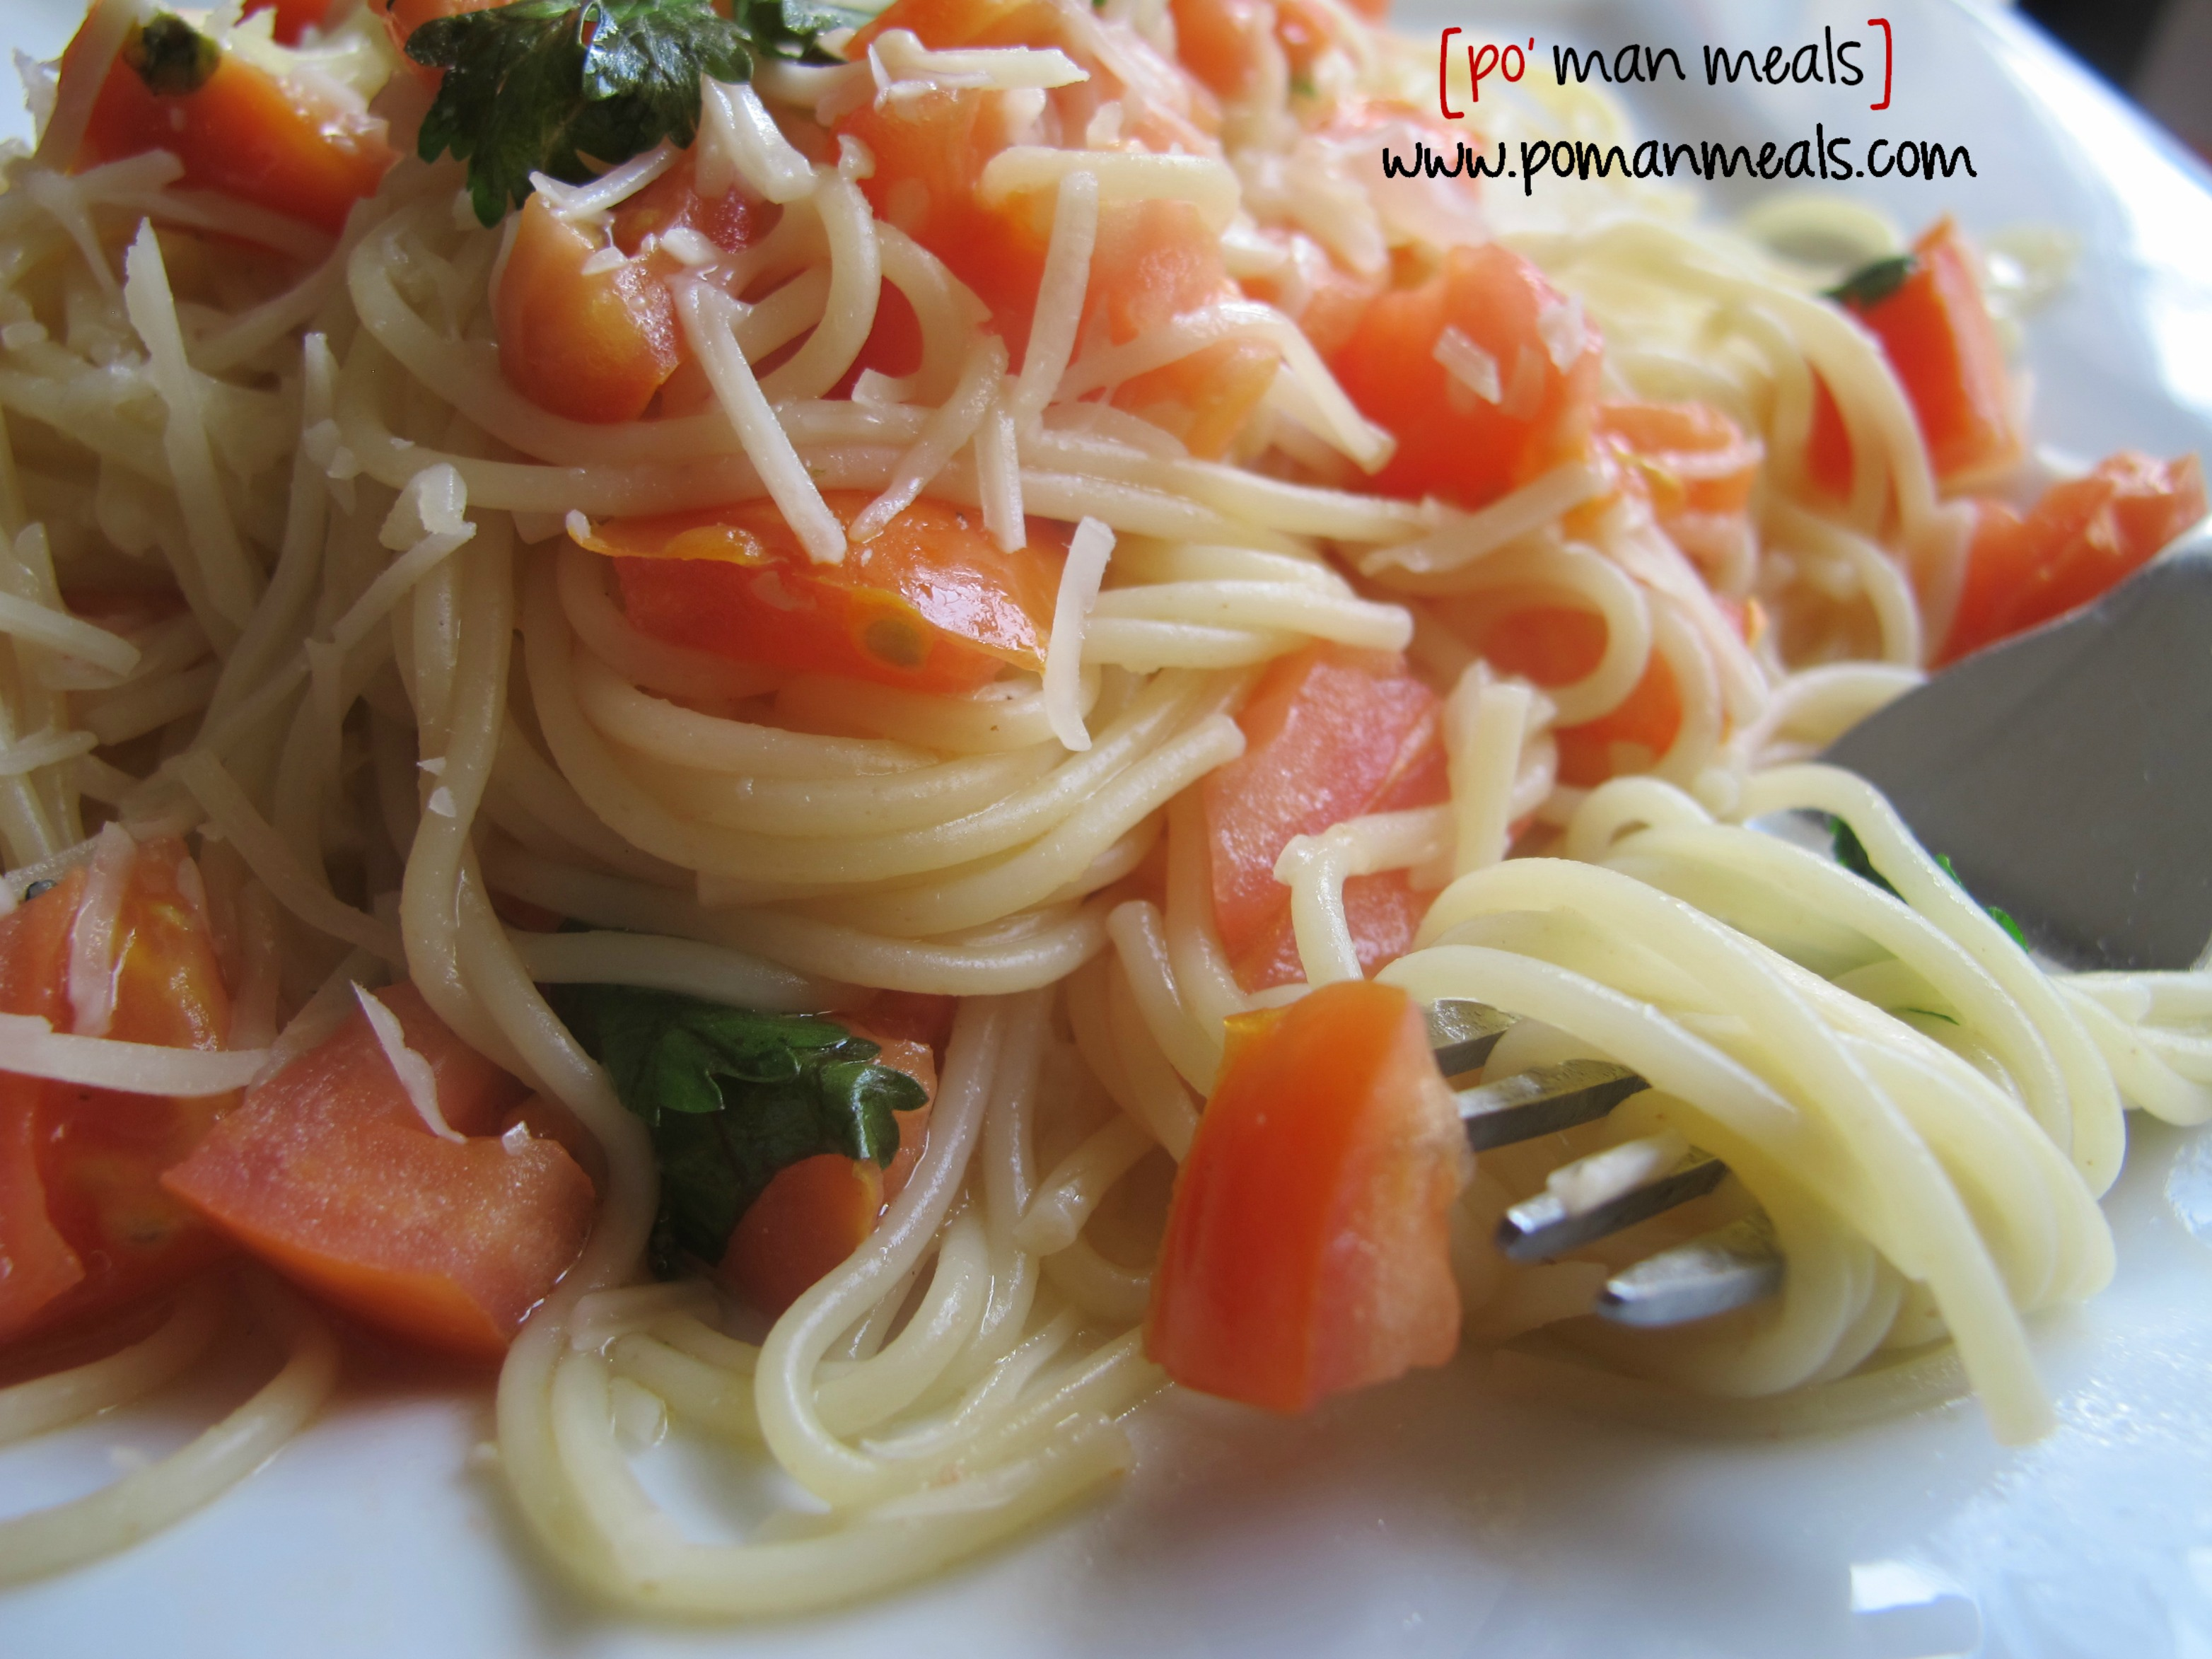 Po Man Meals Angel Hair Pasta With Tomatoes And Parmesan